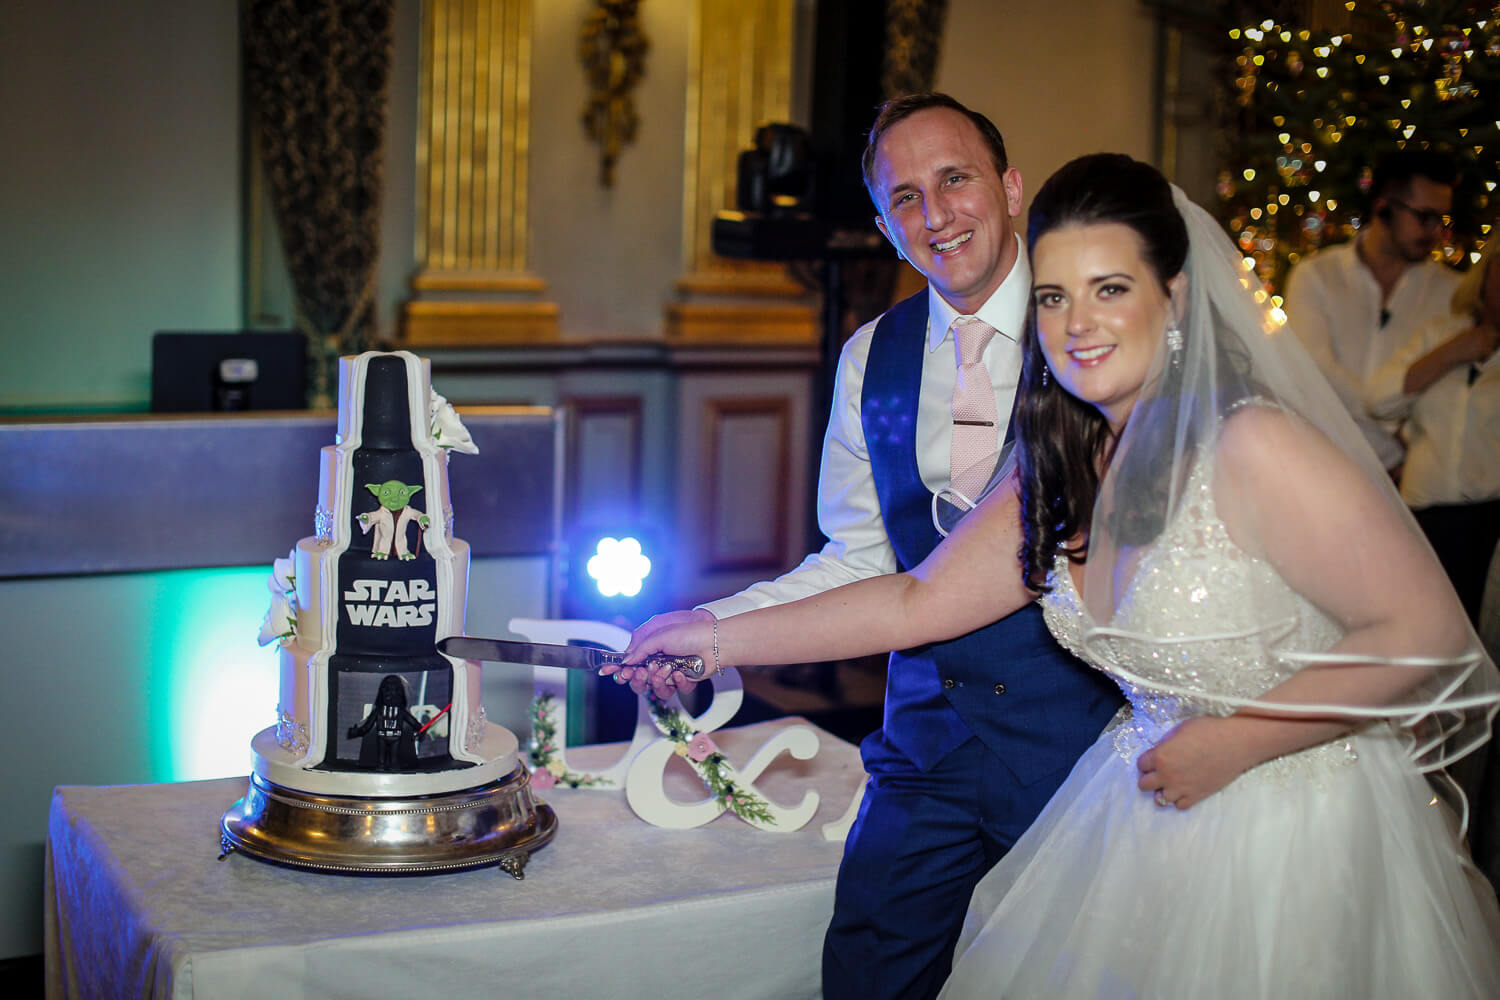 Knowsley Hall wedding photography bride and groom cutting Star Wars cake